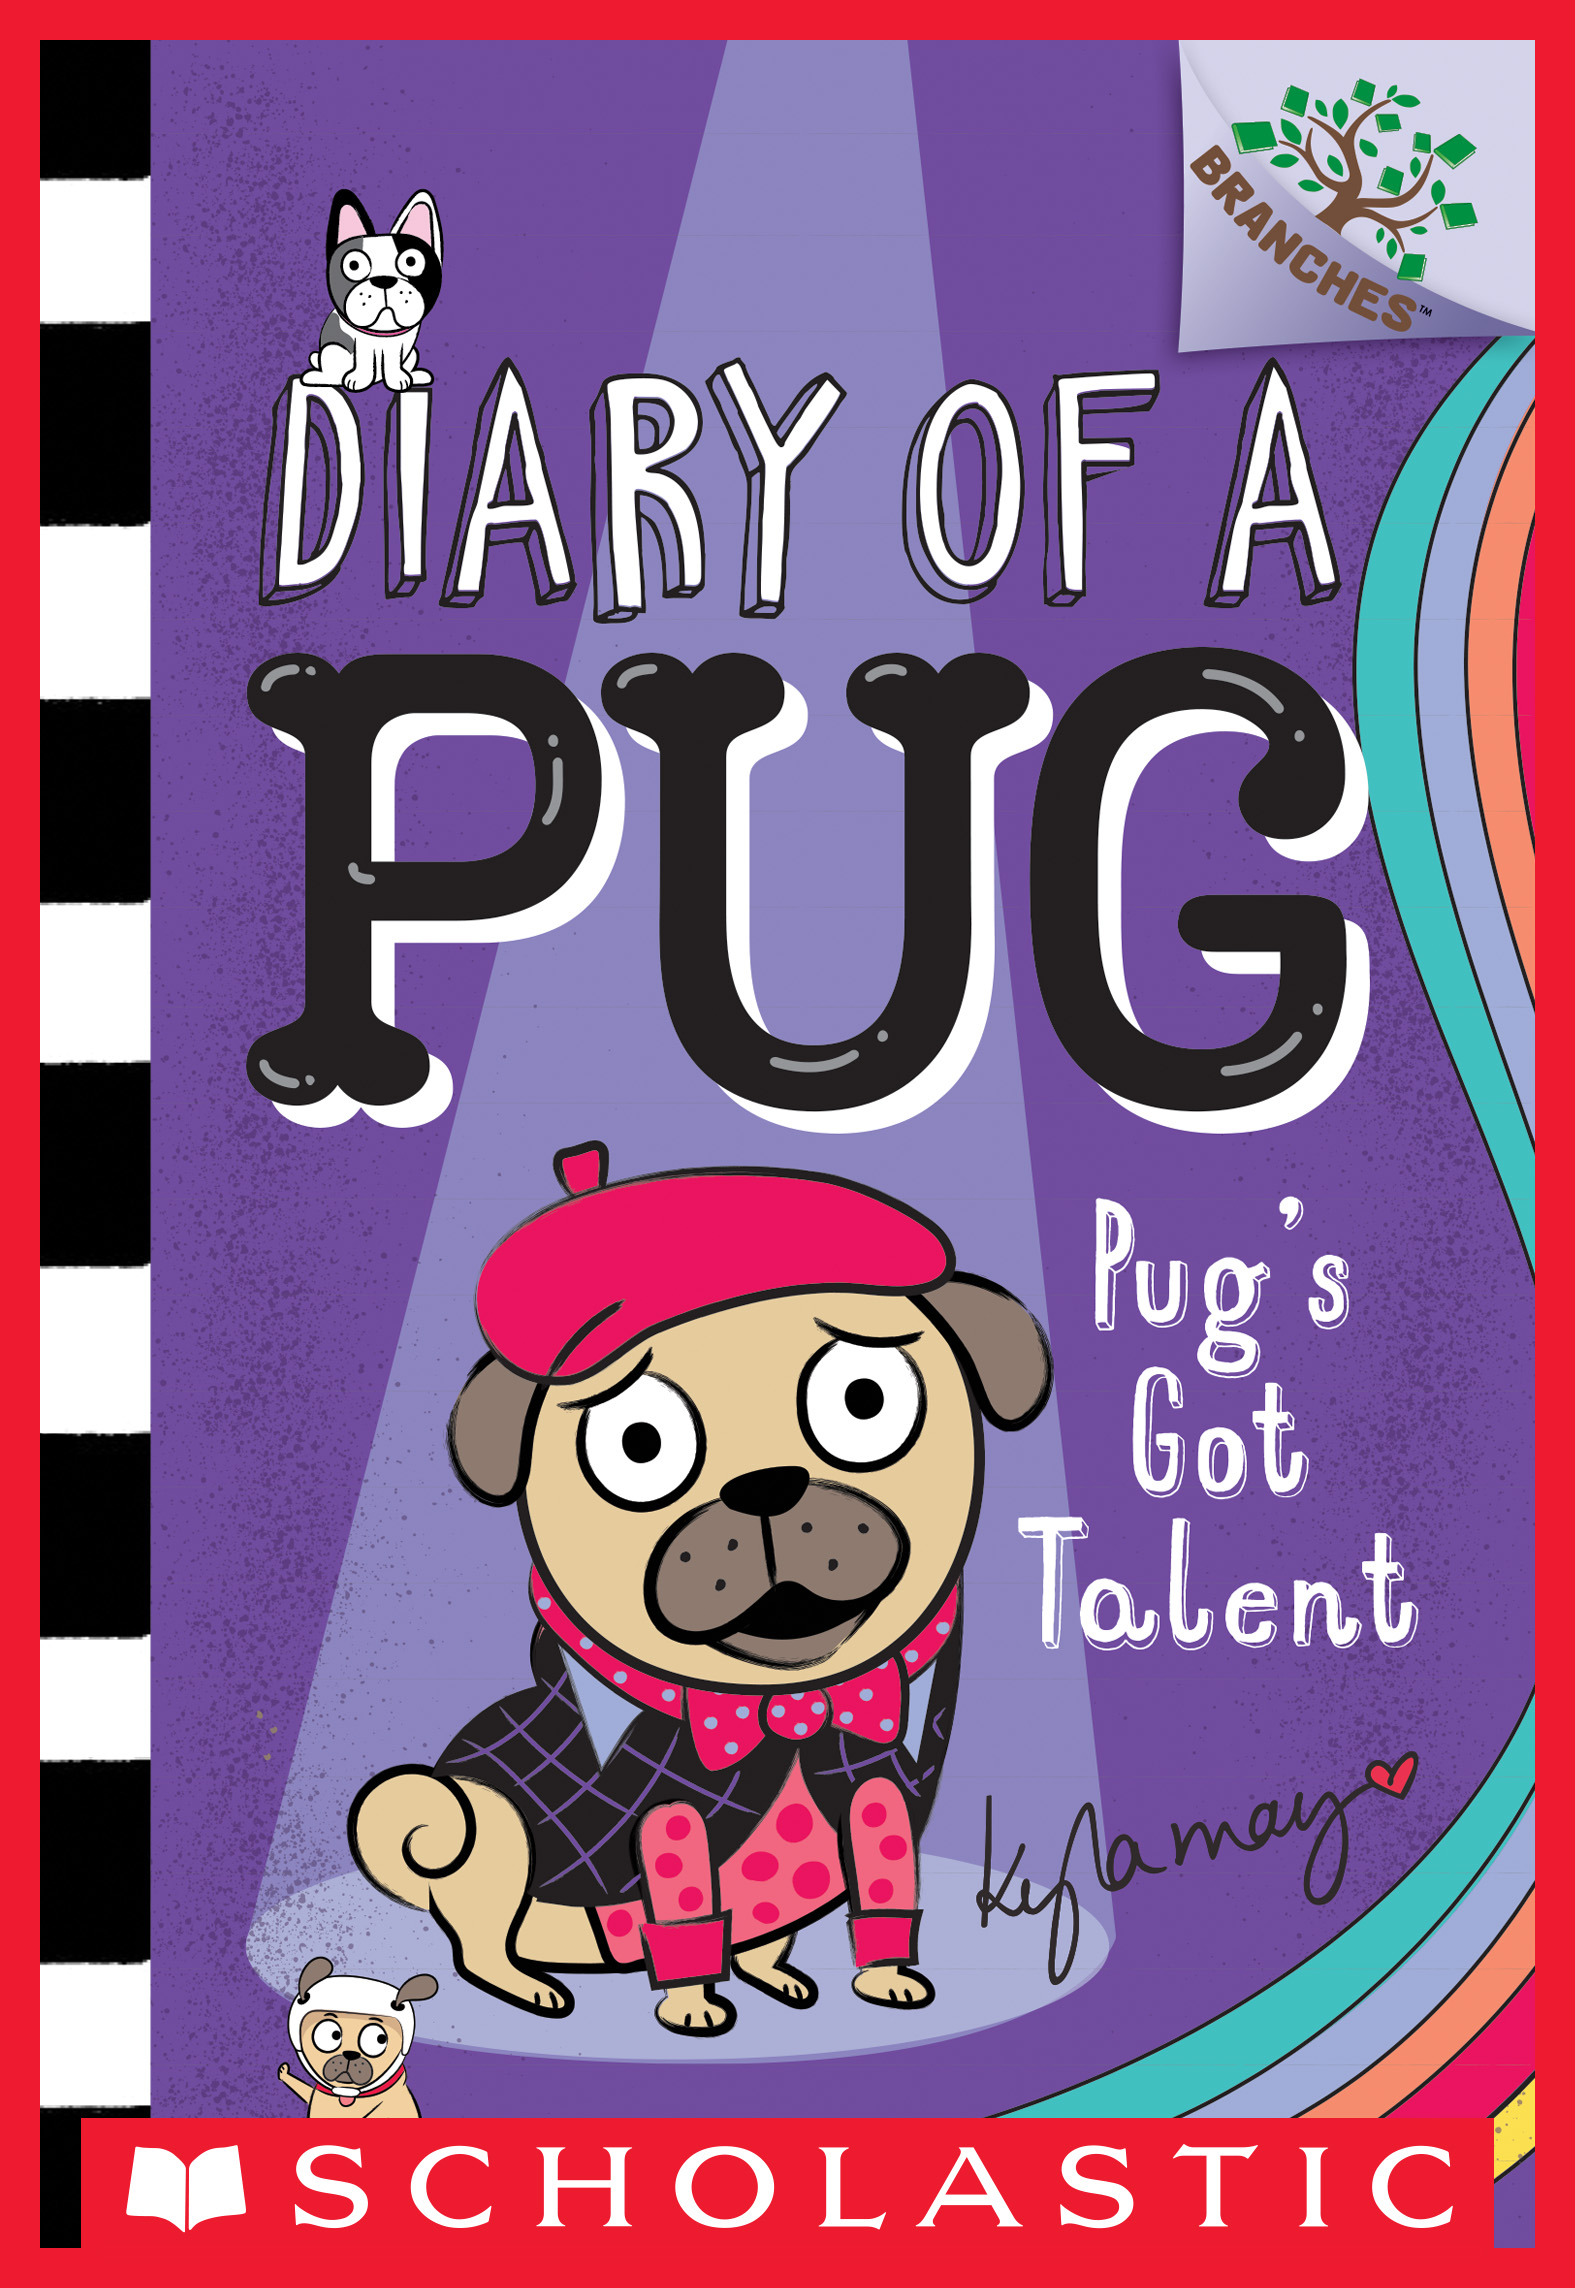 Cover Image of Pug's Got Talent: A Branches Book (Diary of a Pug #4)